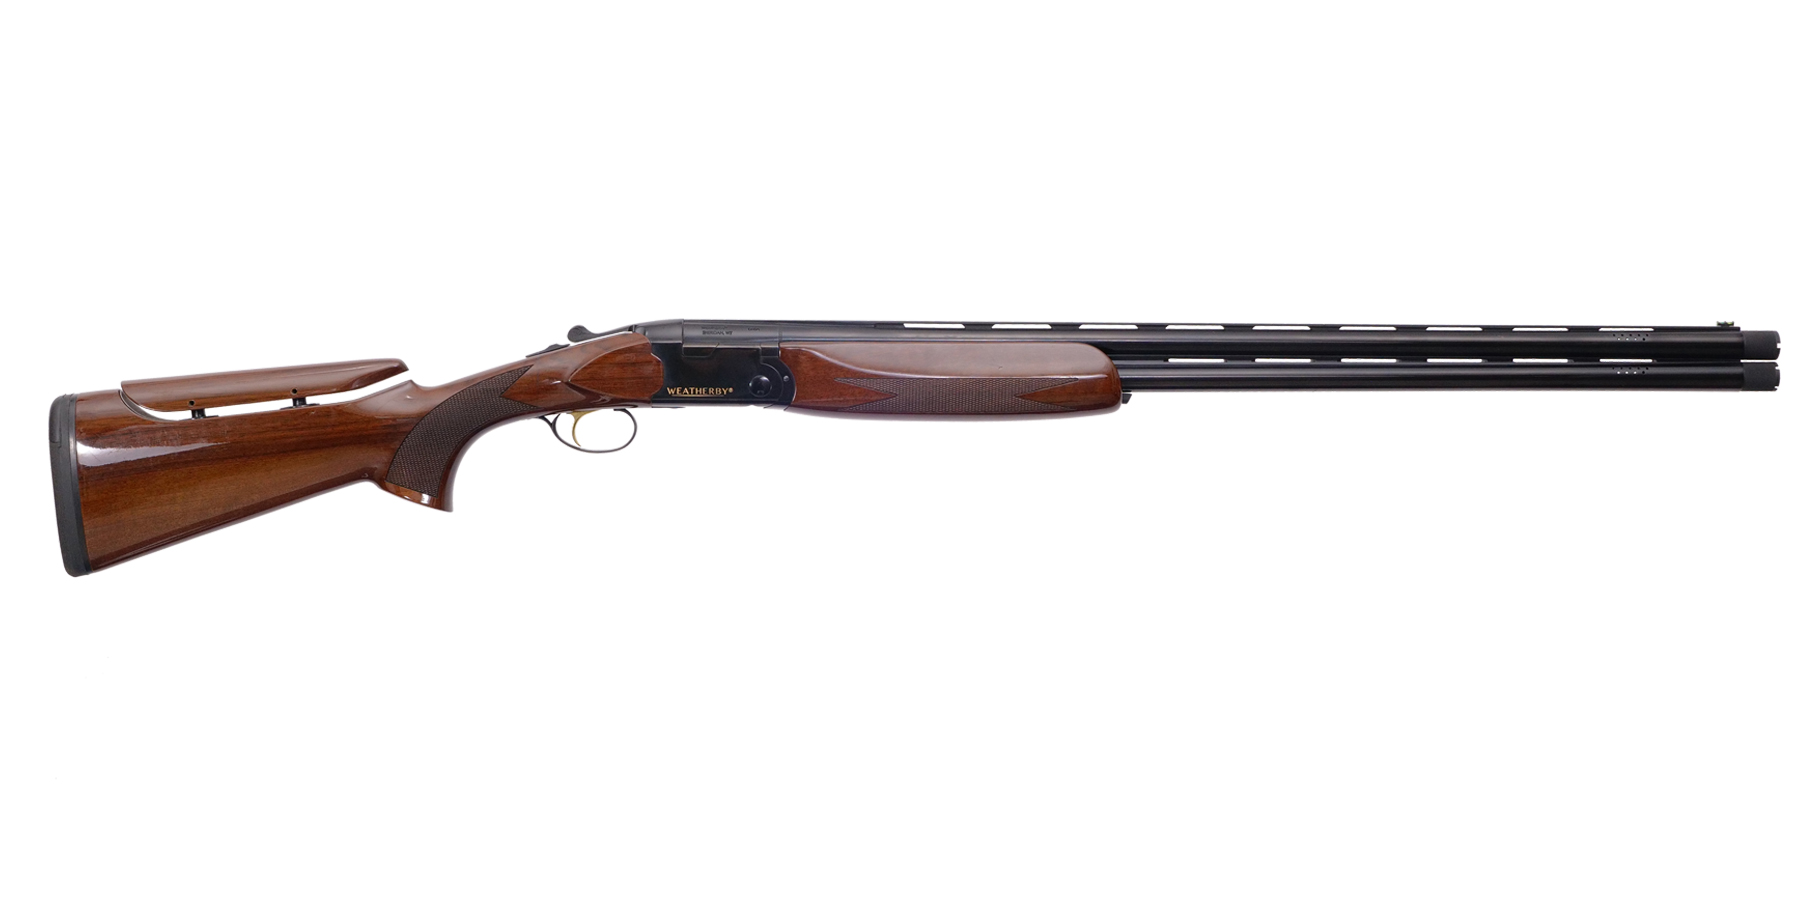 Weatherby ORION SPORTING 12 GAUGE